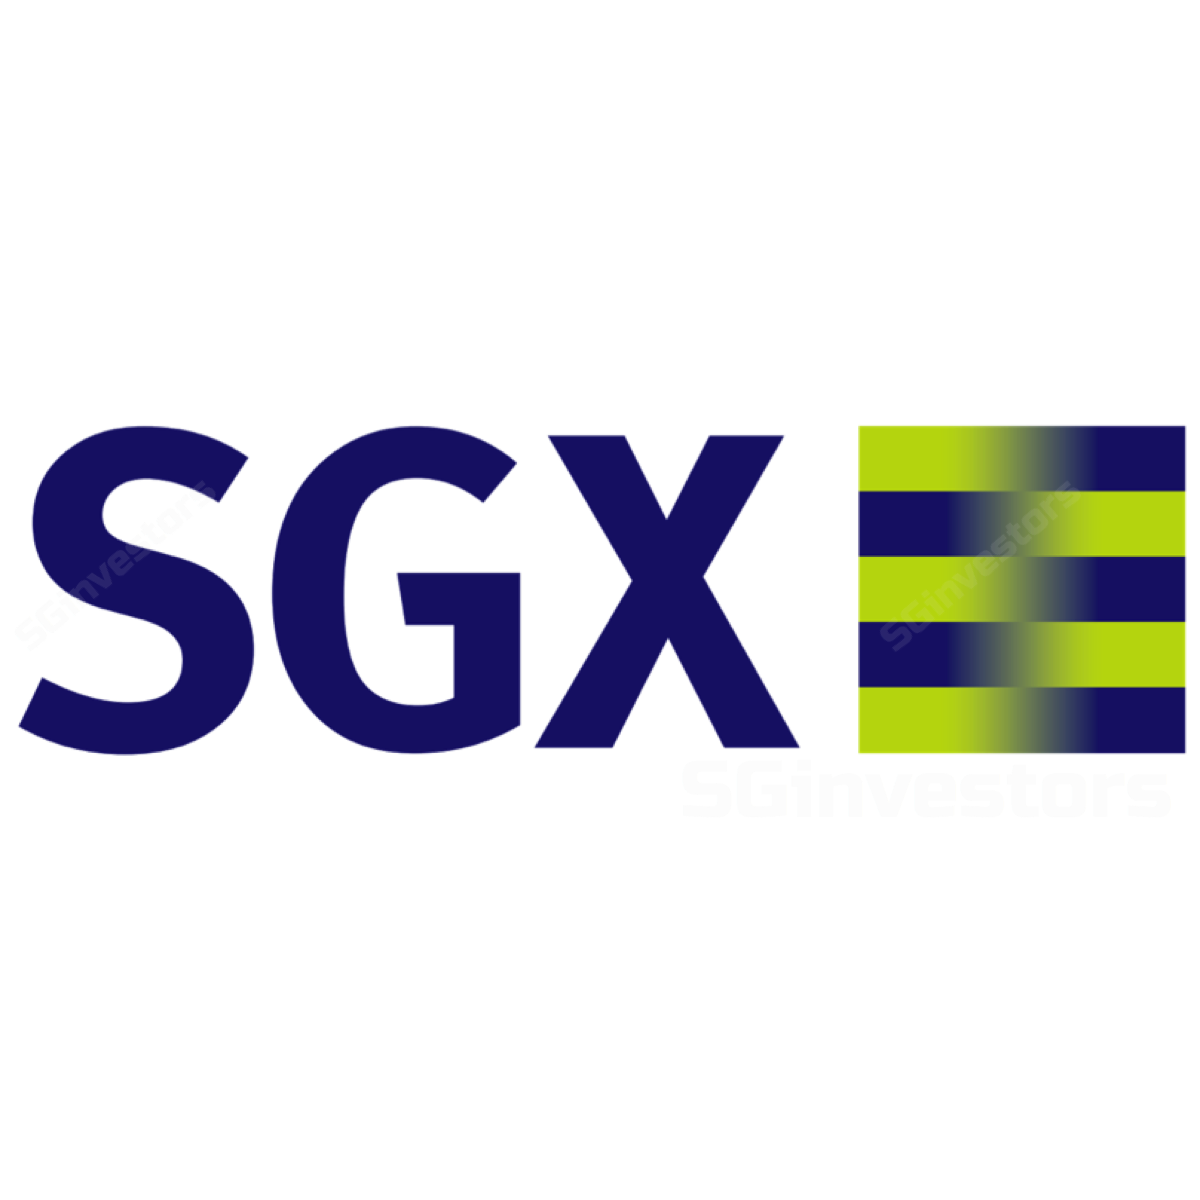 Singapore Exchange (SGX) - RHB Invest 2018-06-22: Stronger Sadv Expected In Fy19 Market Cap